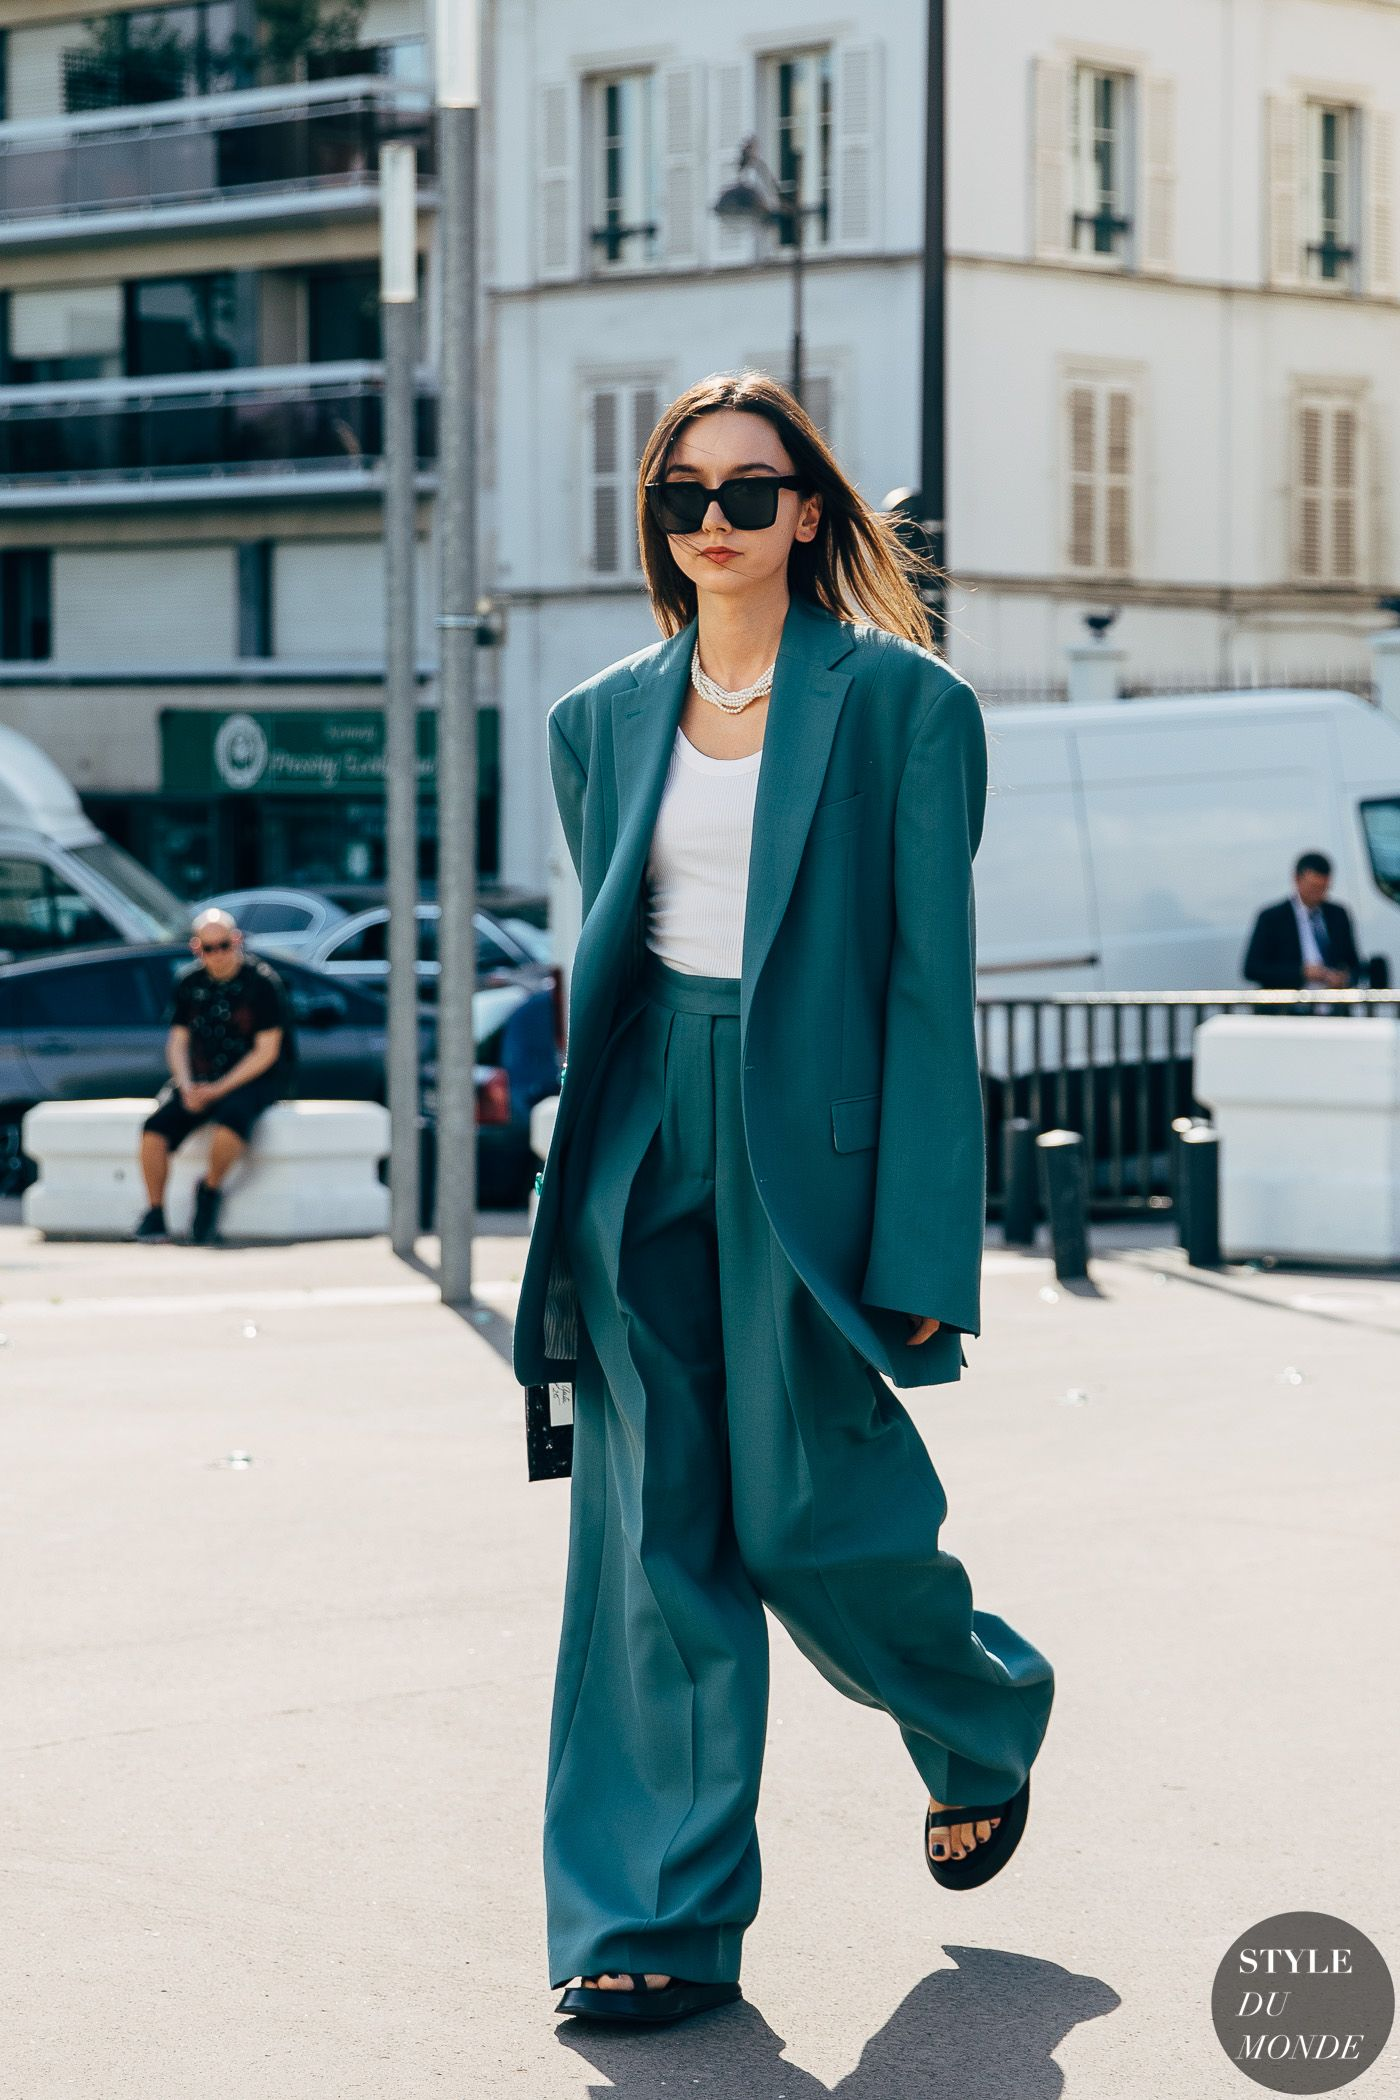 Haute Couture Spring 2019 Street Style: Beatrice Gutu - STYLE DU MONDE | Street Style Street Fashion Photos Beatrice Gutu